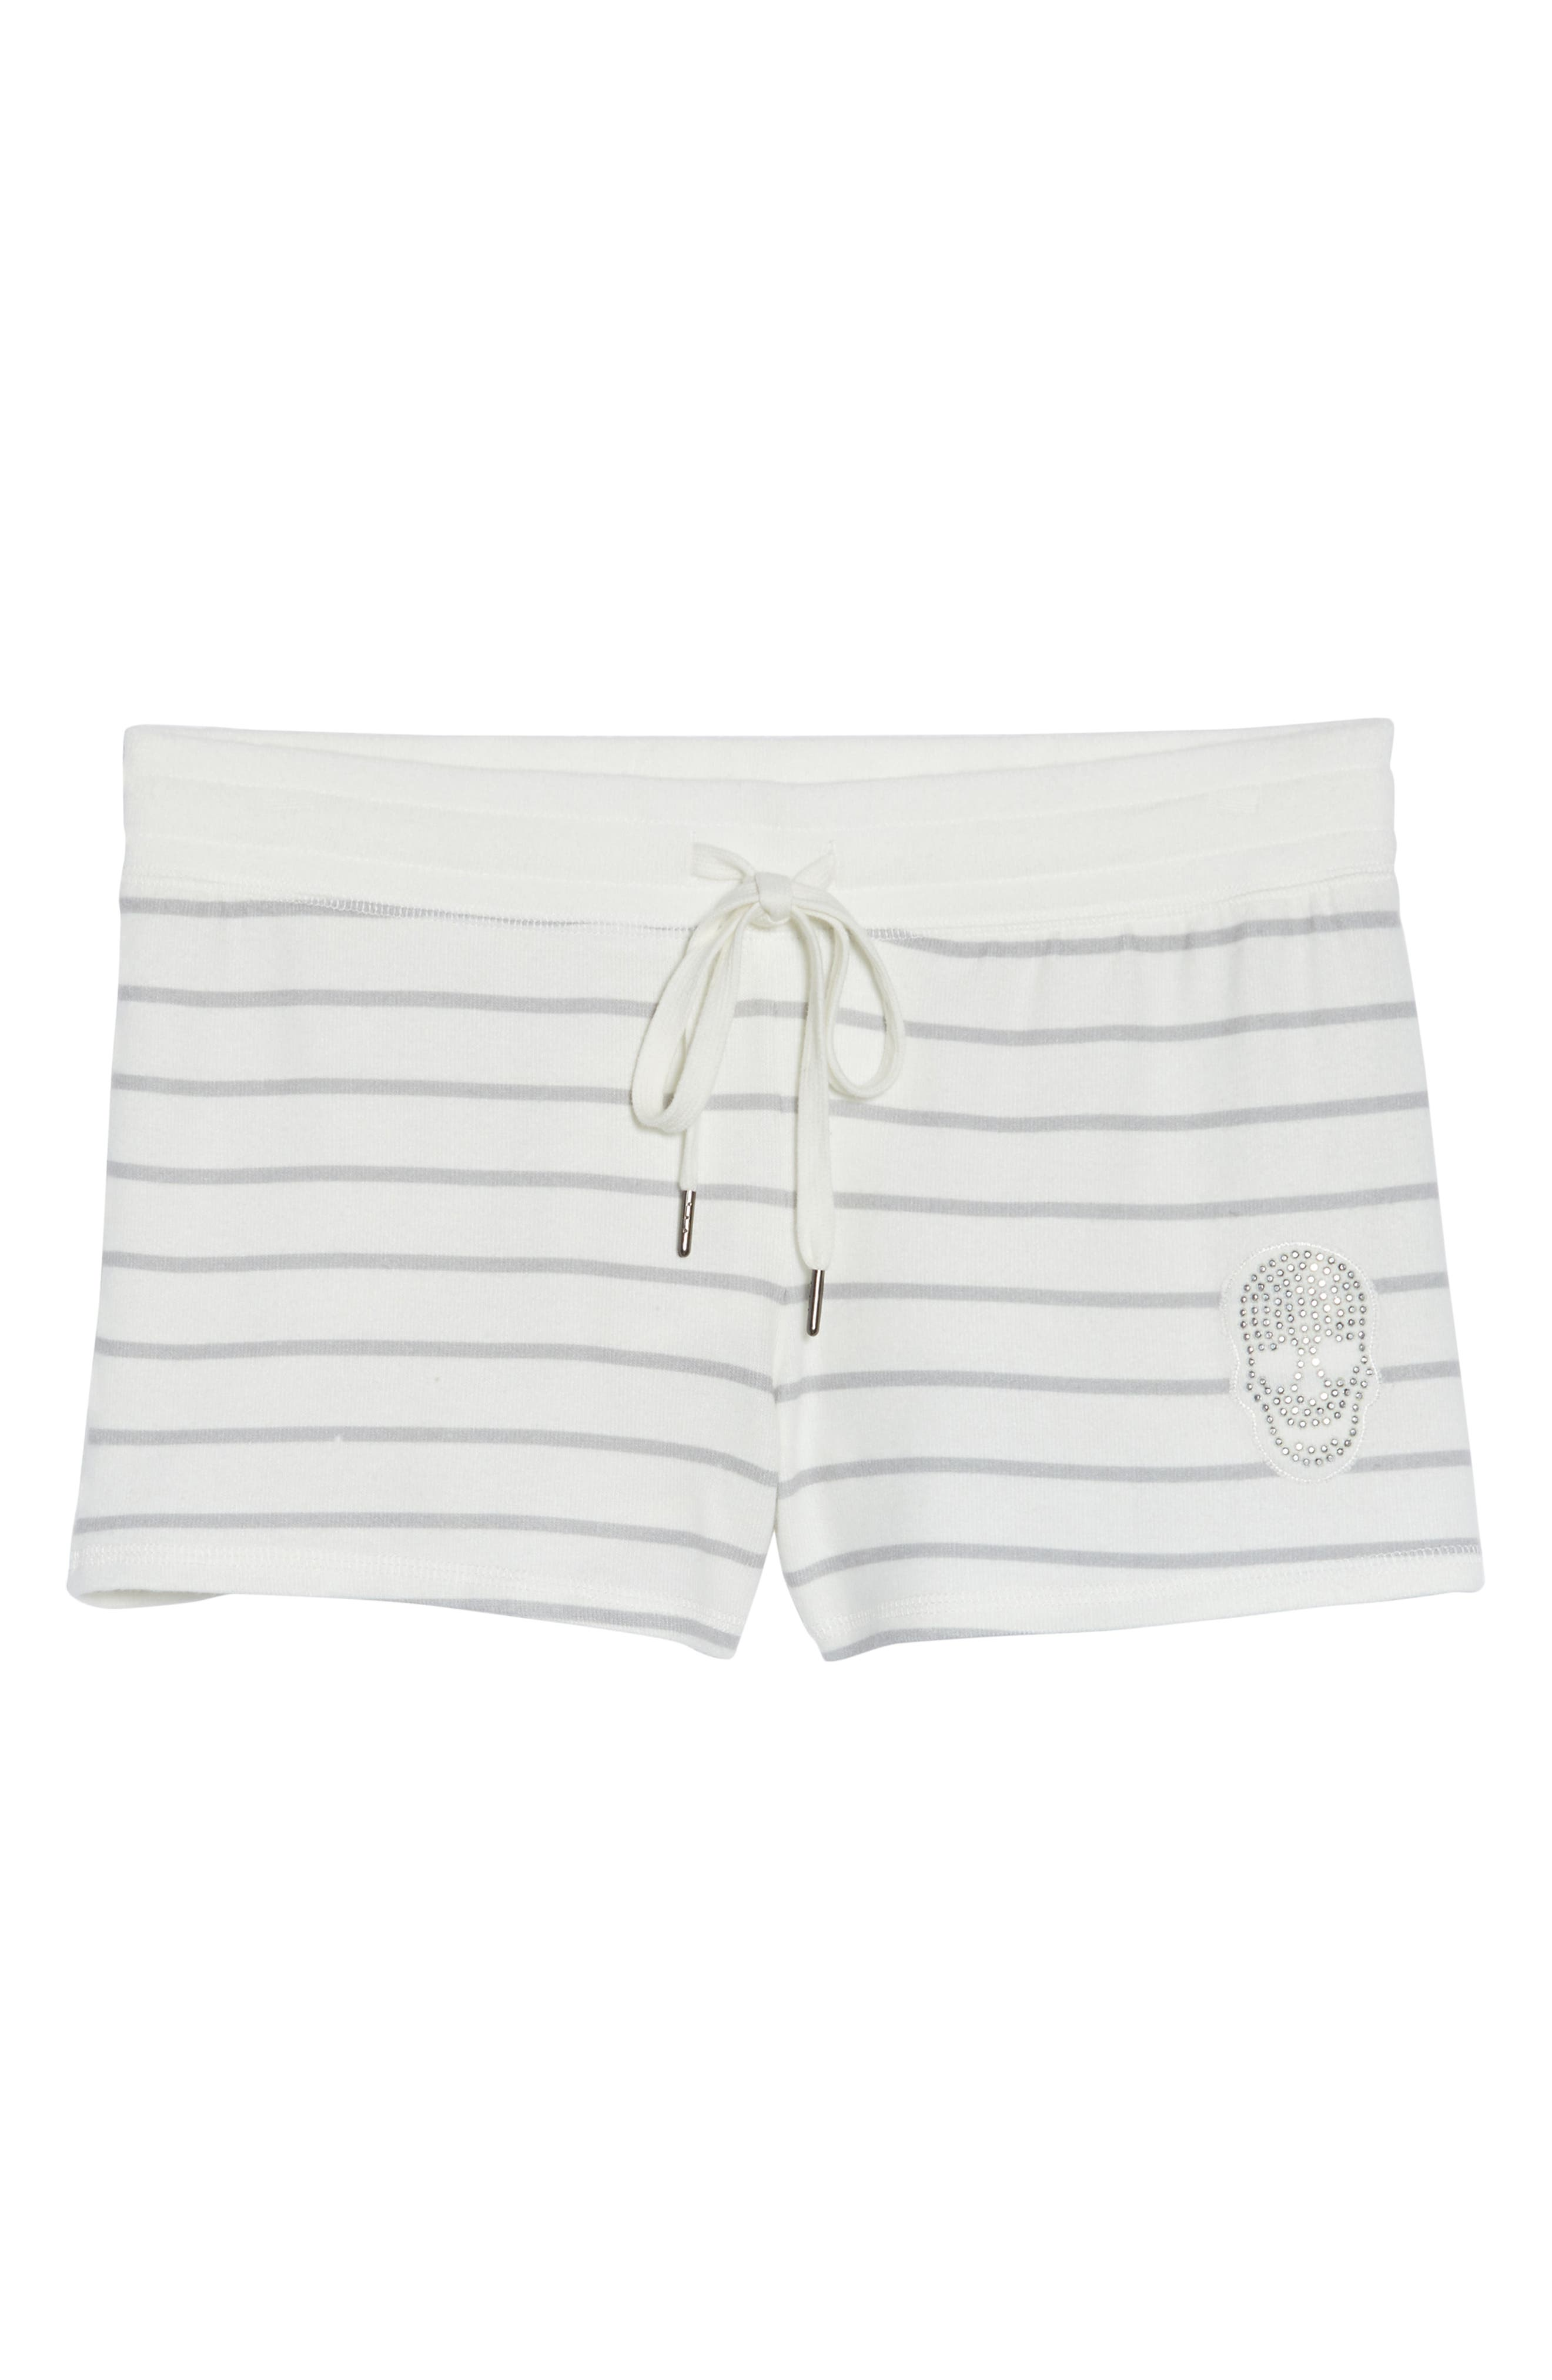 Skull Stripe Lounge Shorts,                             Alternate thumbnail 6, color,                             900